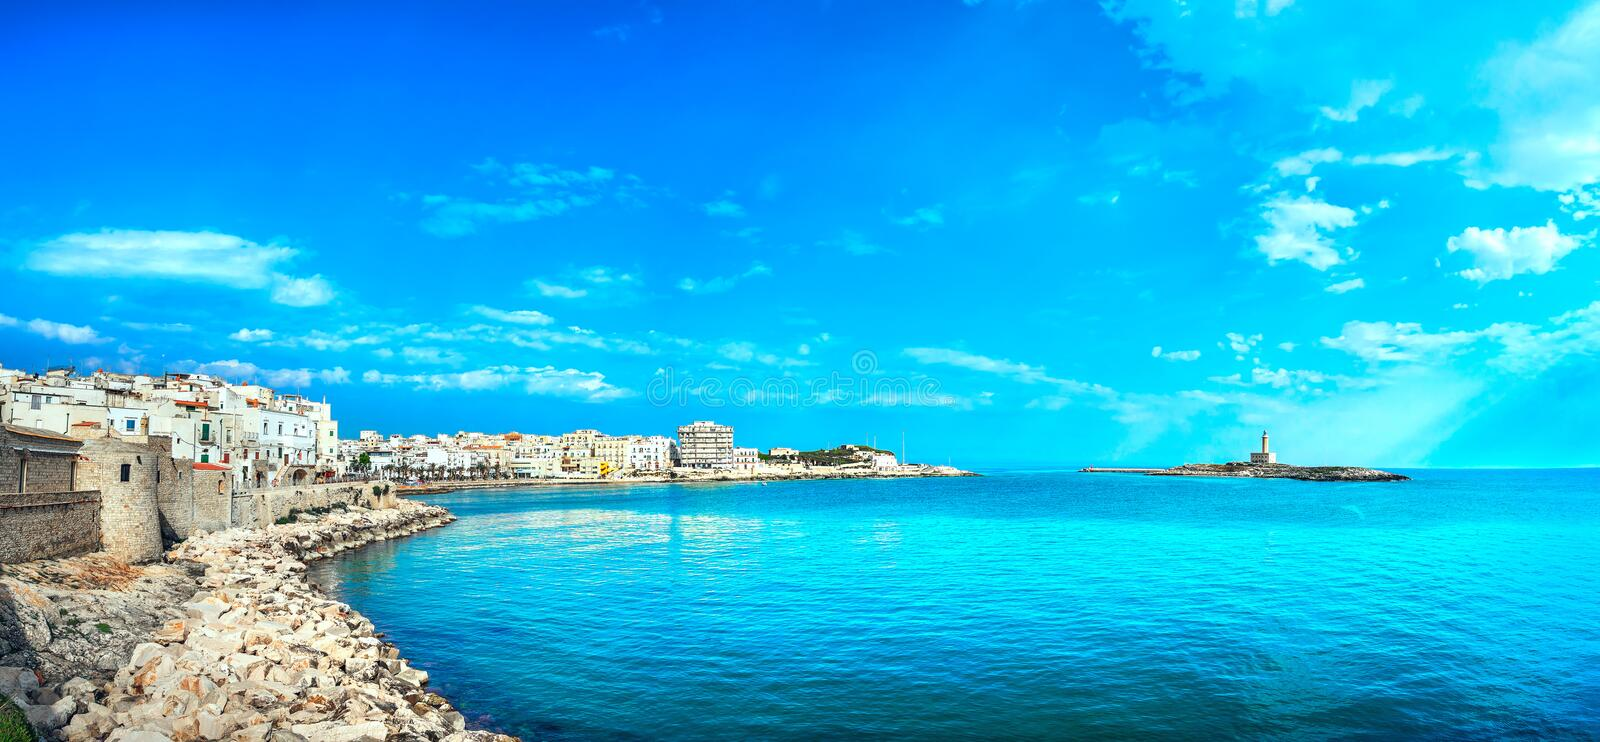 Vieste town on the rocks and the lighthouse, Gargano, Apulia, It. Vieste town on the rocks and the lighthouse, Gargano peninsula, Apulia, southern Italy, Europe royalty free stock photo